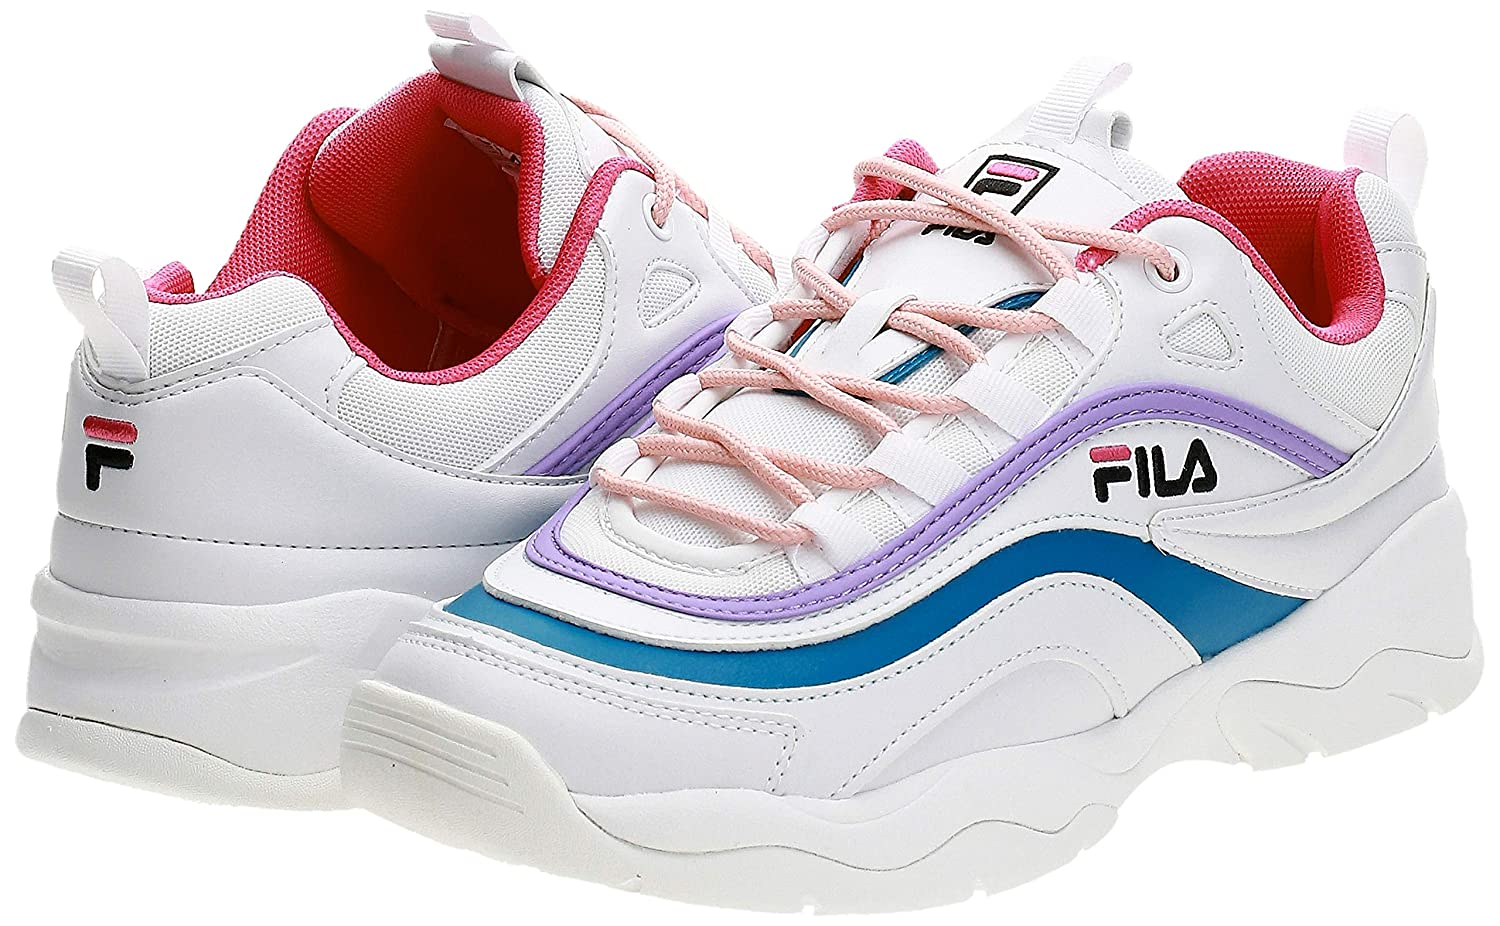 FILA RAY LOW WMNS Women's Athletic